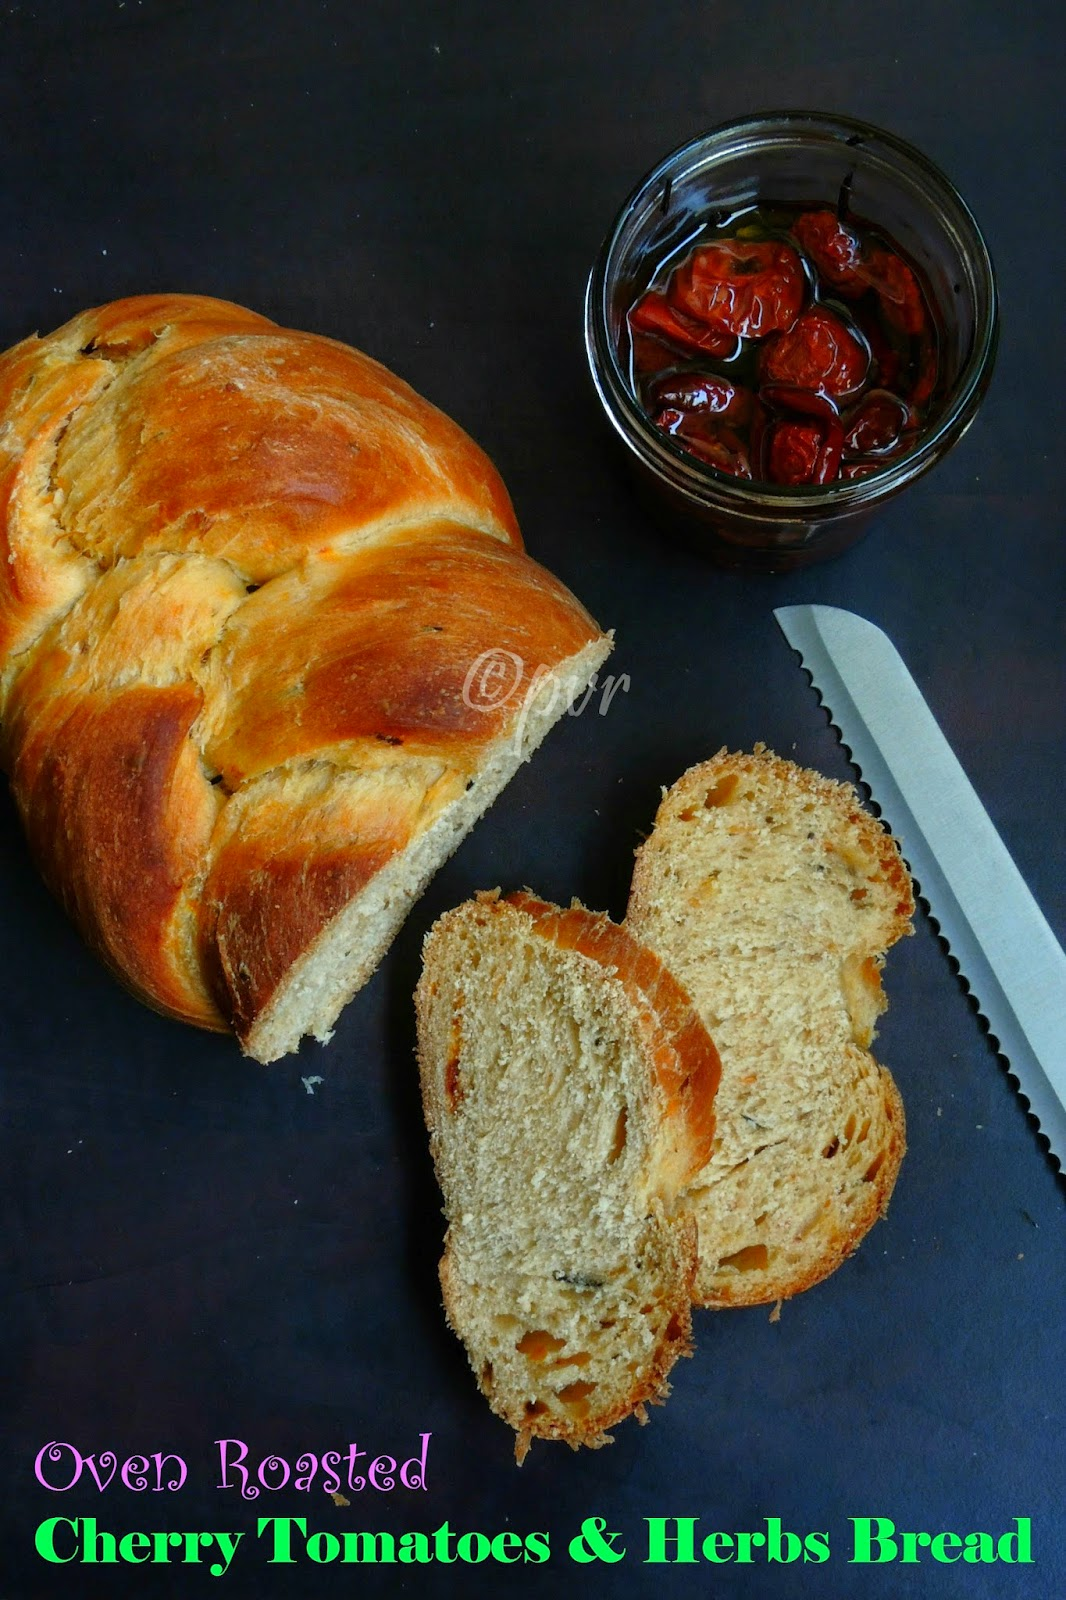 Roasted cherry tomatoes & herbs bread